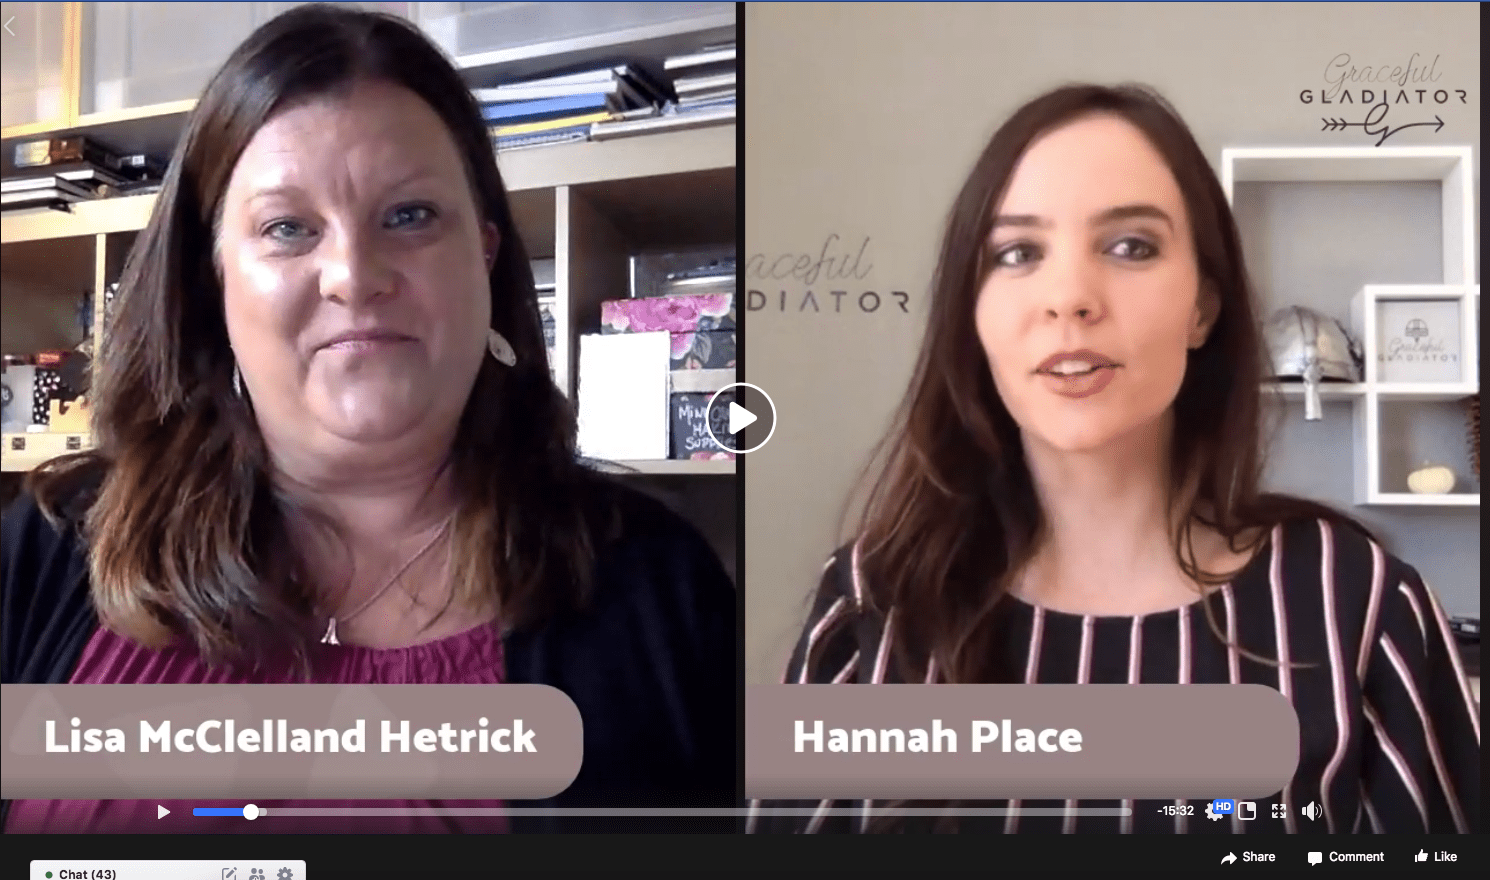 Facebook Live Interview with Hannah Place Graceful Gladiator